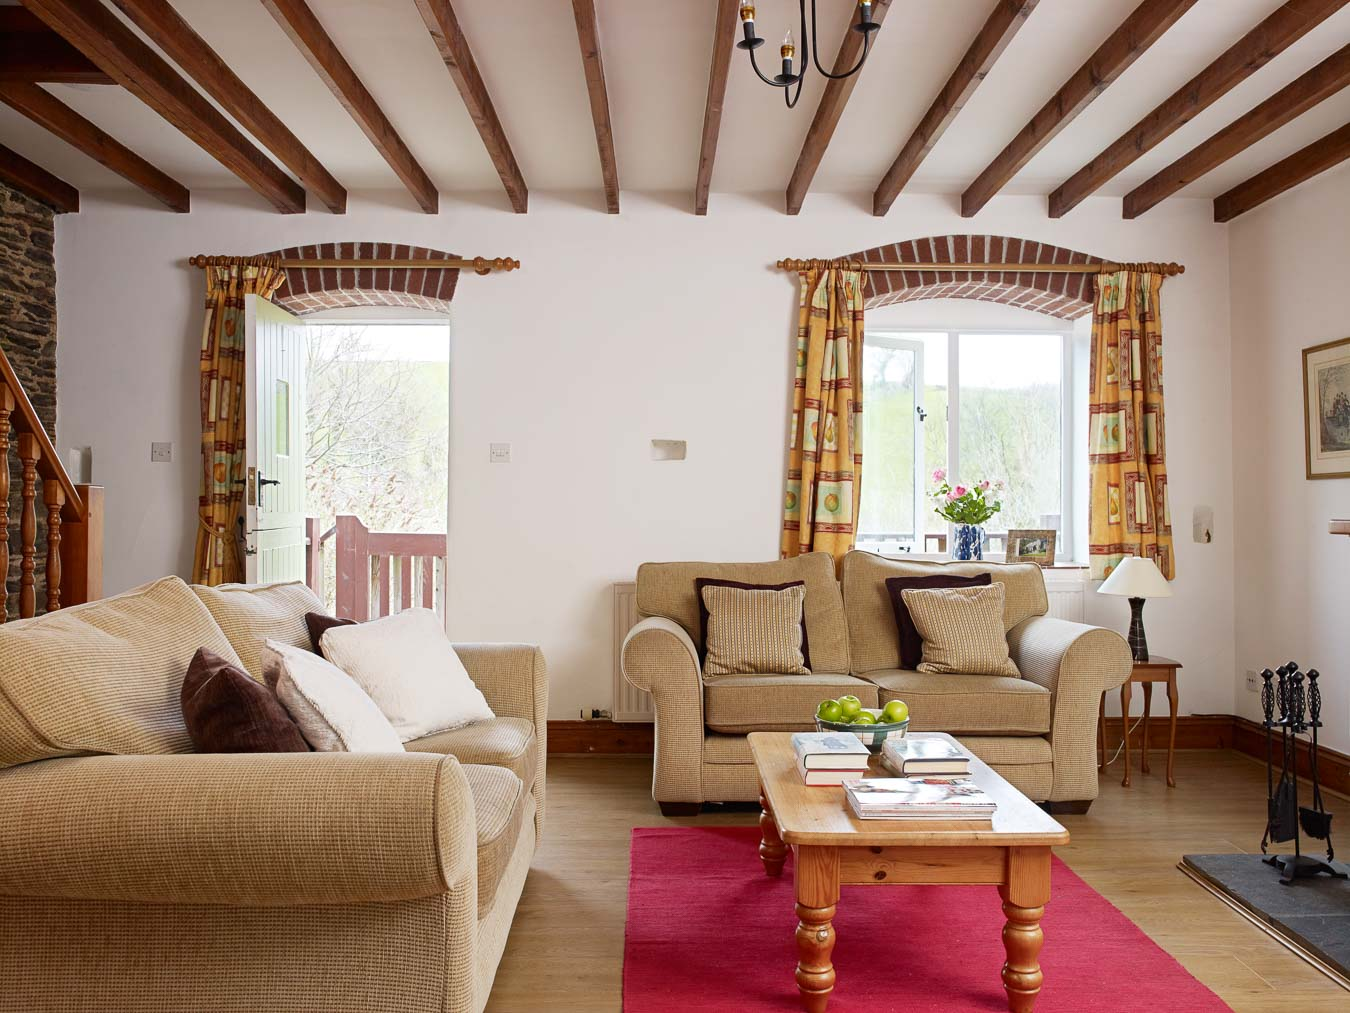 The living room at Cartwheel cottage with open fire and access onto private decking which overlooks the lawn and the Devon hills beyond at Flear Farm.